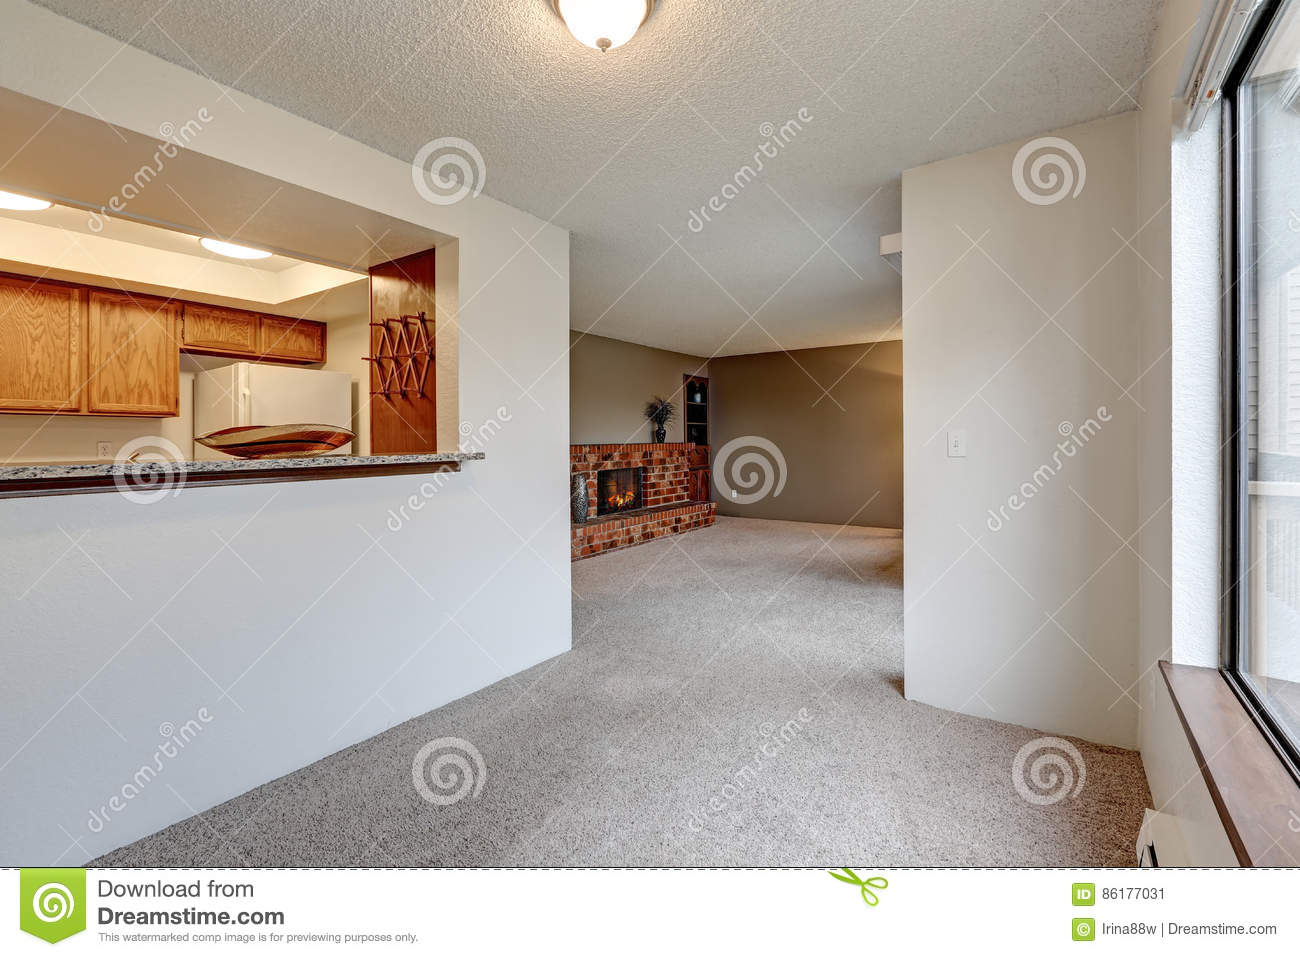 Empty Dining Room With White Walls And Wall To Carpet Next Kitchen View Of Living Brick Fireplace Northwest USA